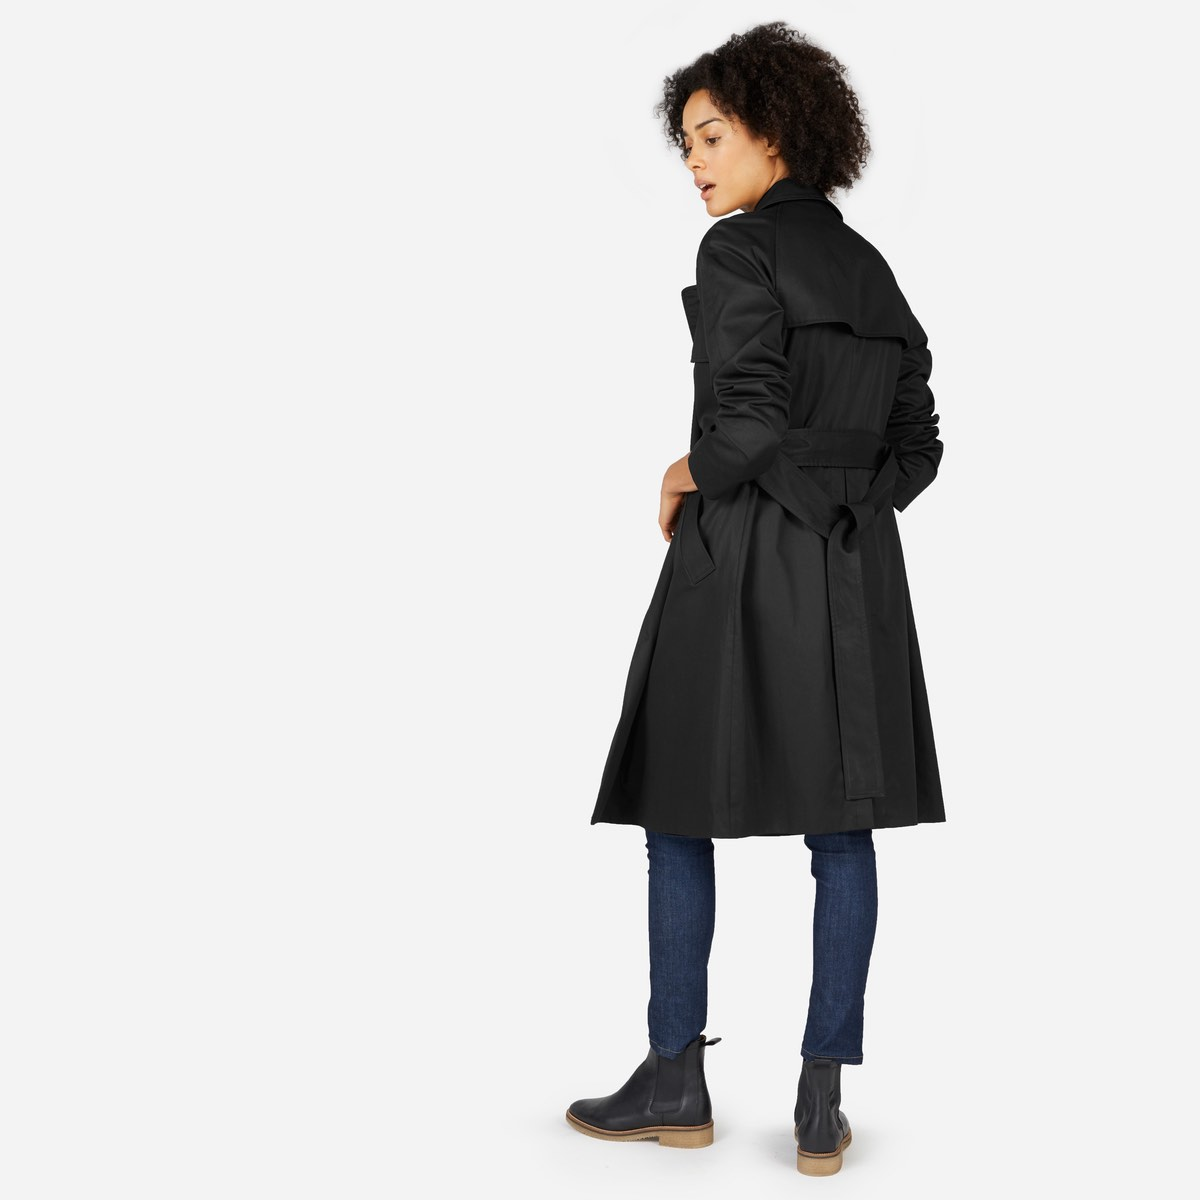 Everlane trench—Wardrobe classic: The trench